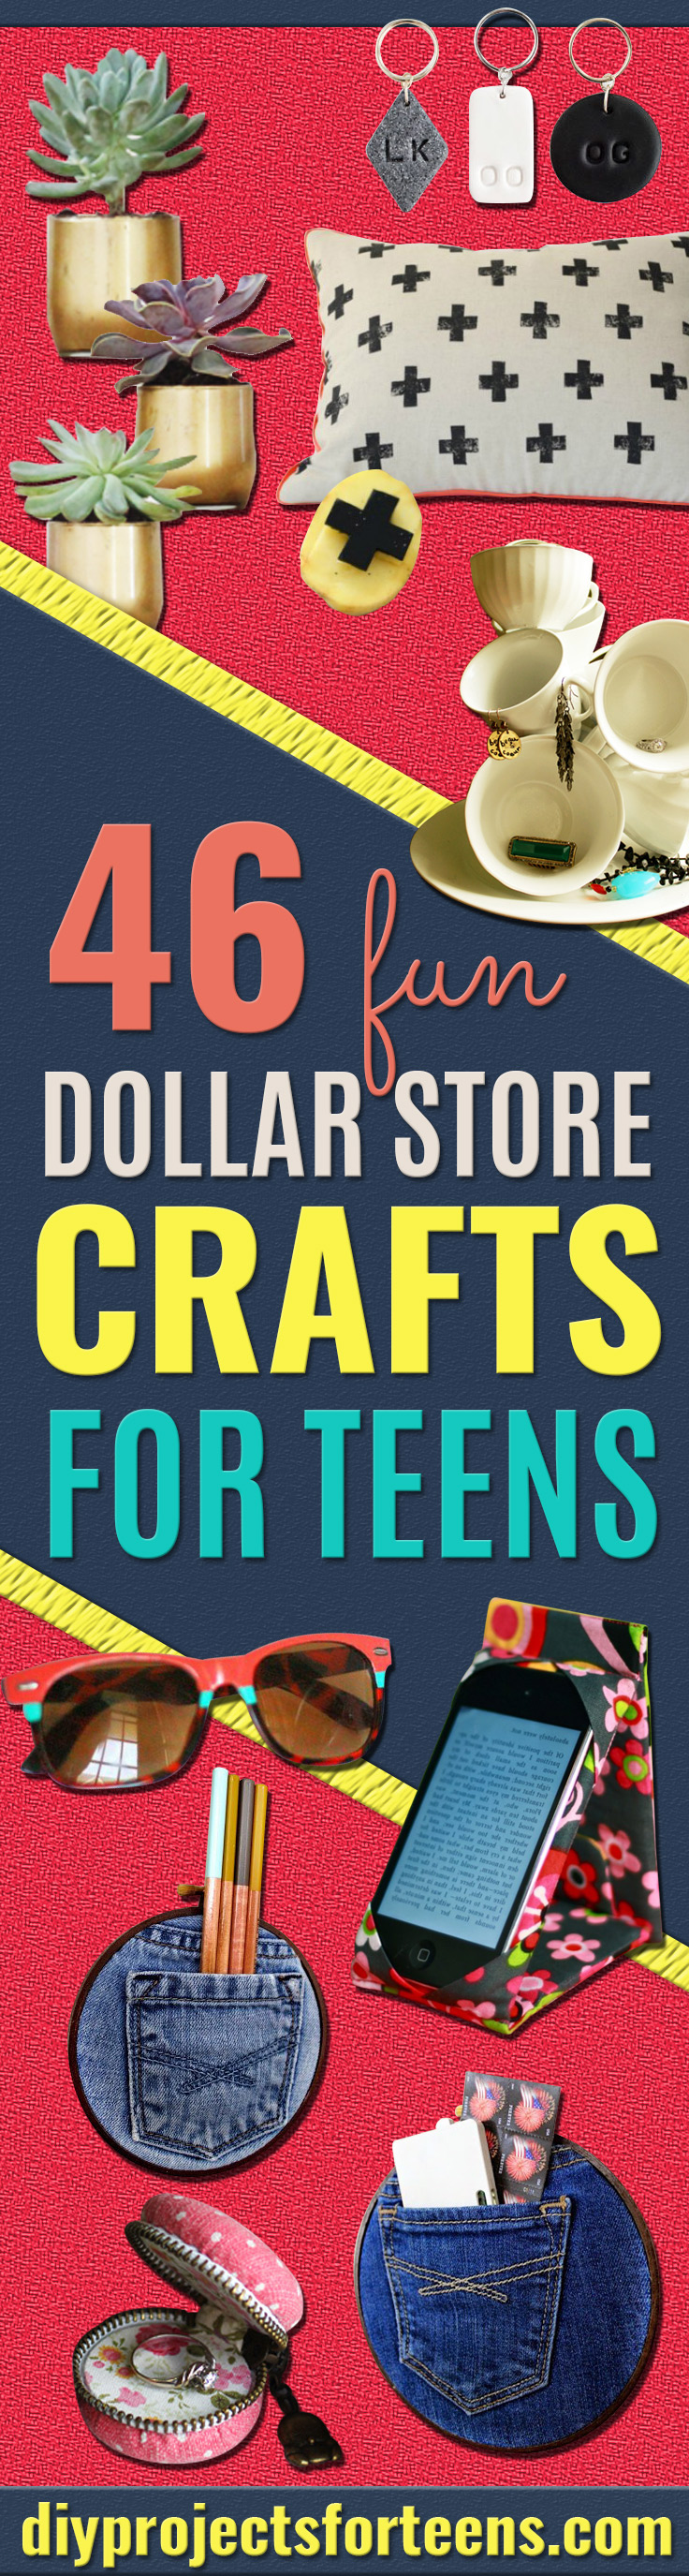 46-fun-dollar-store-crafts-for-teens-pin